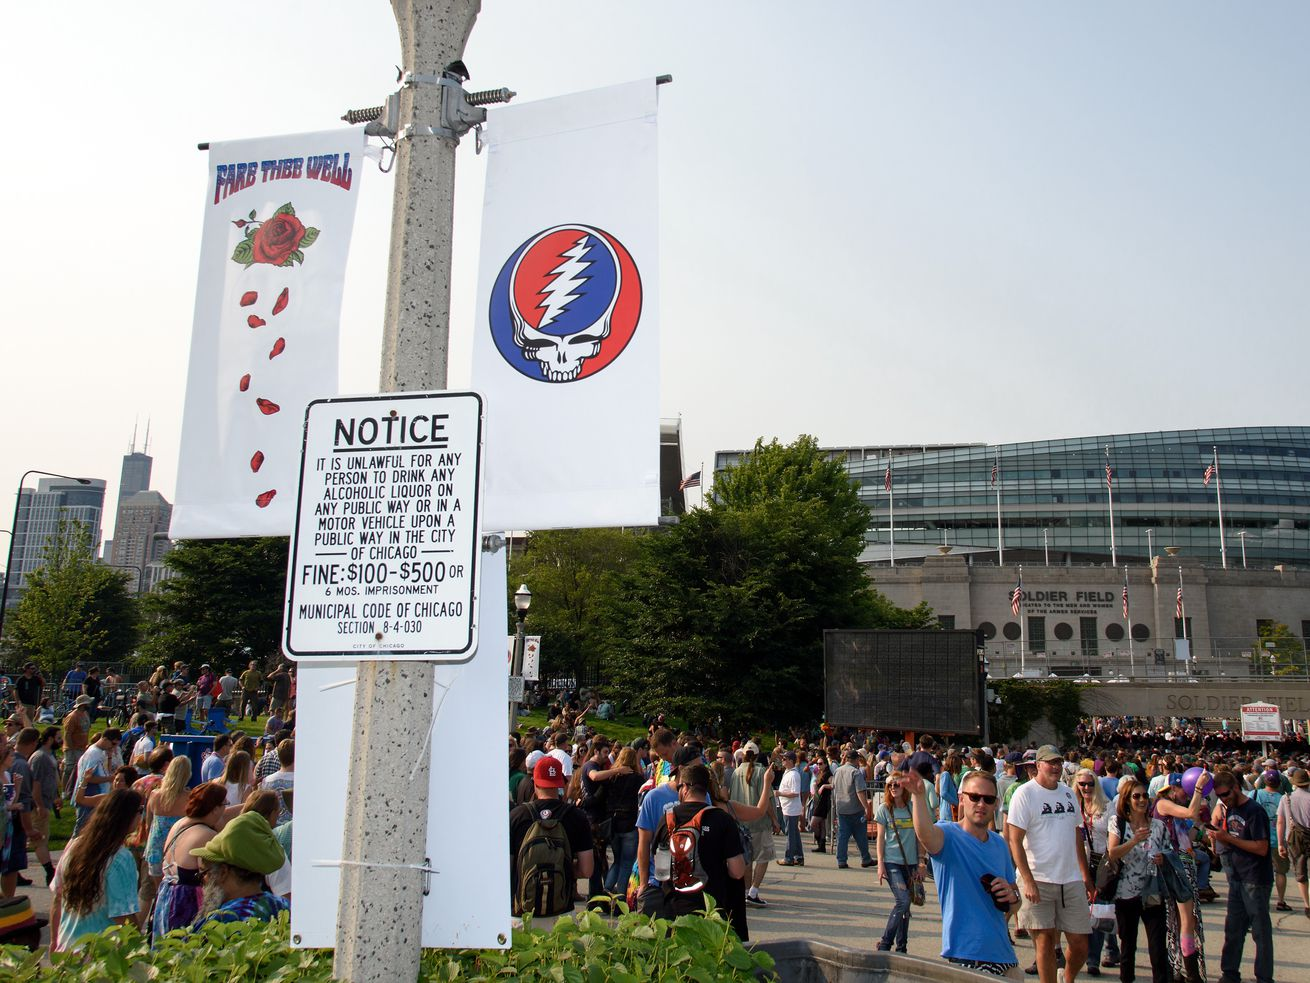 The concert promoter who brought the Grateful Dead to Chicago in 2015 may open a West Loop music venue.